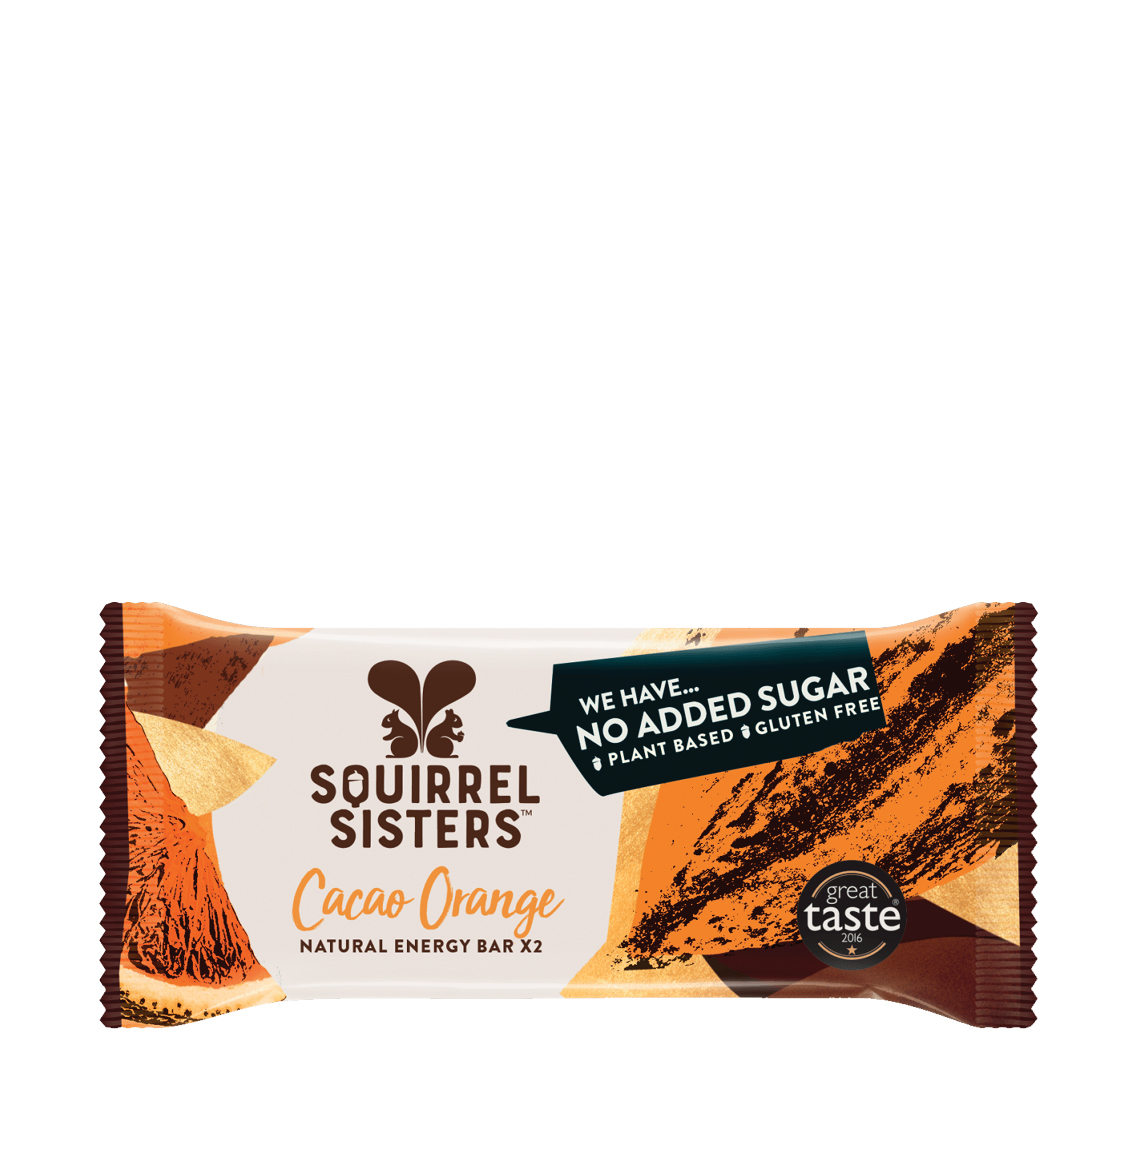 Squirrel Sisters Cacao Orange Bar 4 x 40g